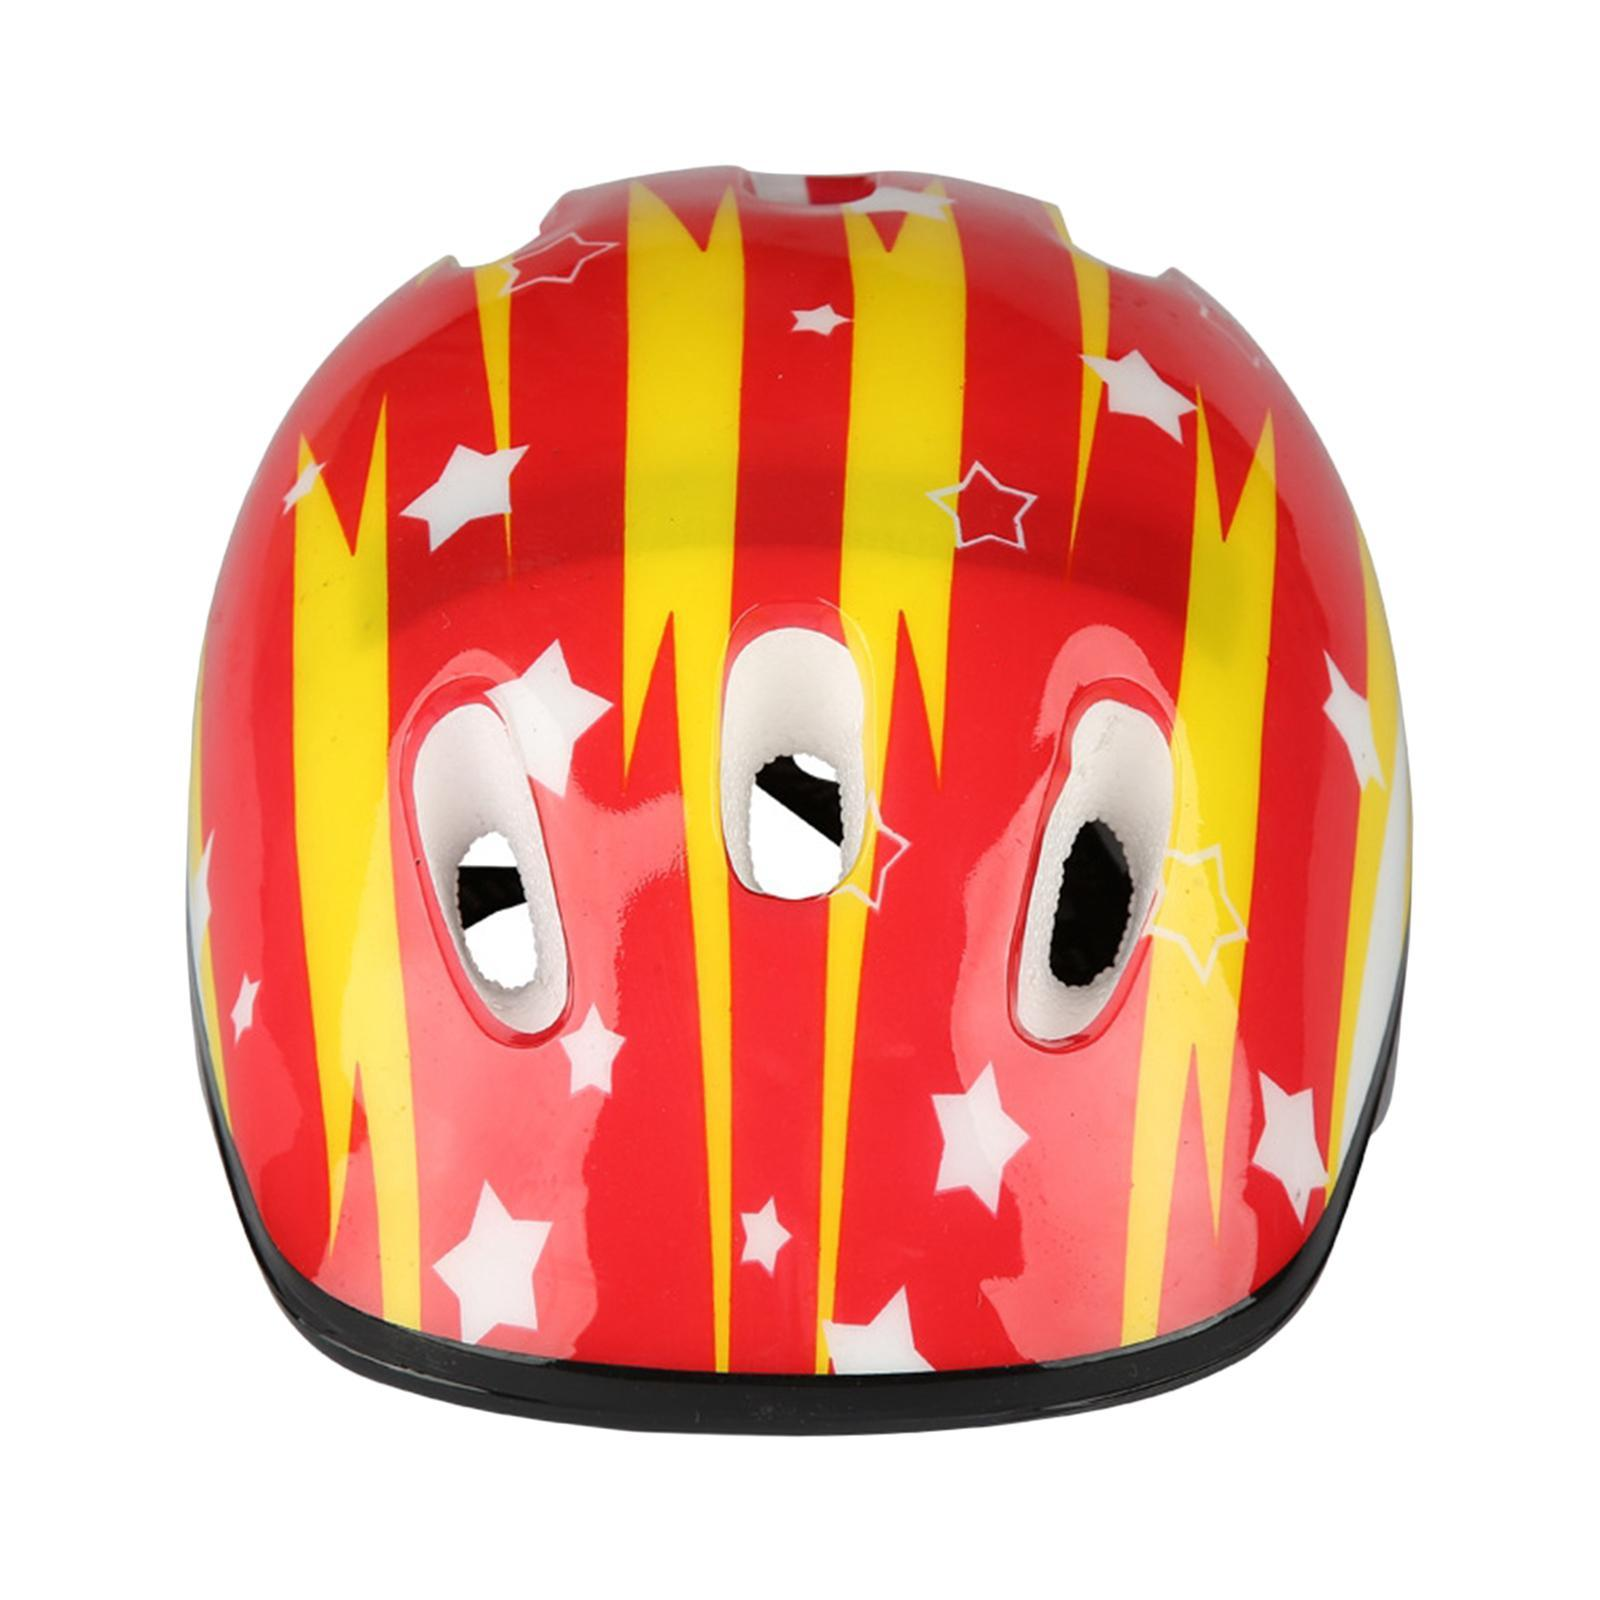 thumbnail 4 - Kids Child Baby Toddler Safety Helmet Bike Bicycle Skate Board Scooter Sport